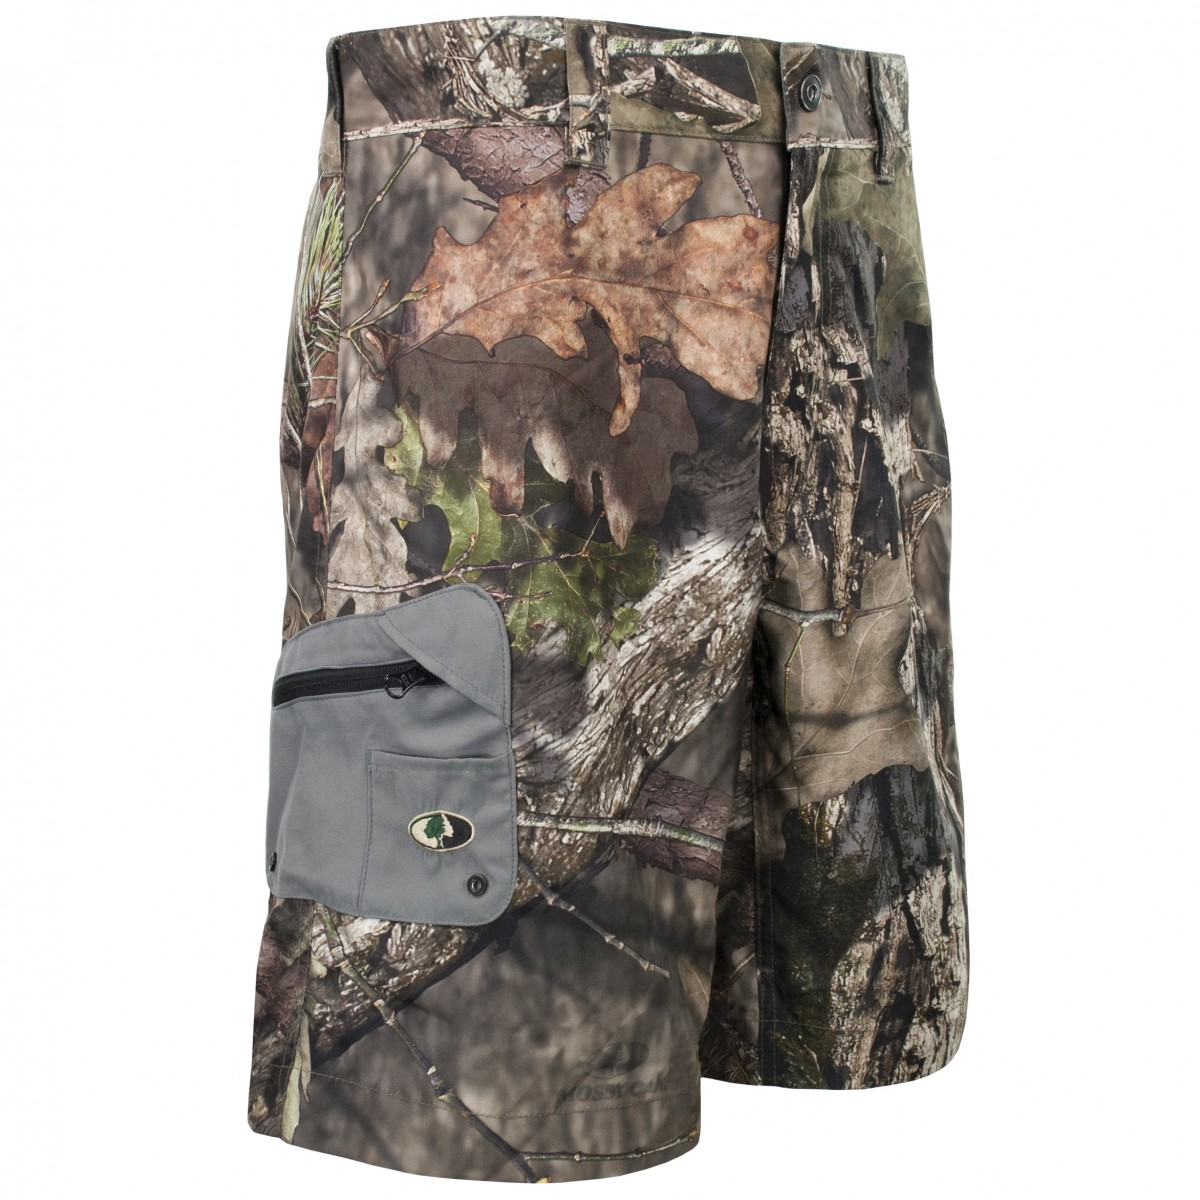 Camouflage camo Military and Hunters Colorful Core Beach Swimming Trunks Shorts